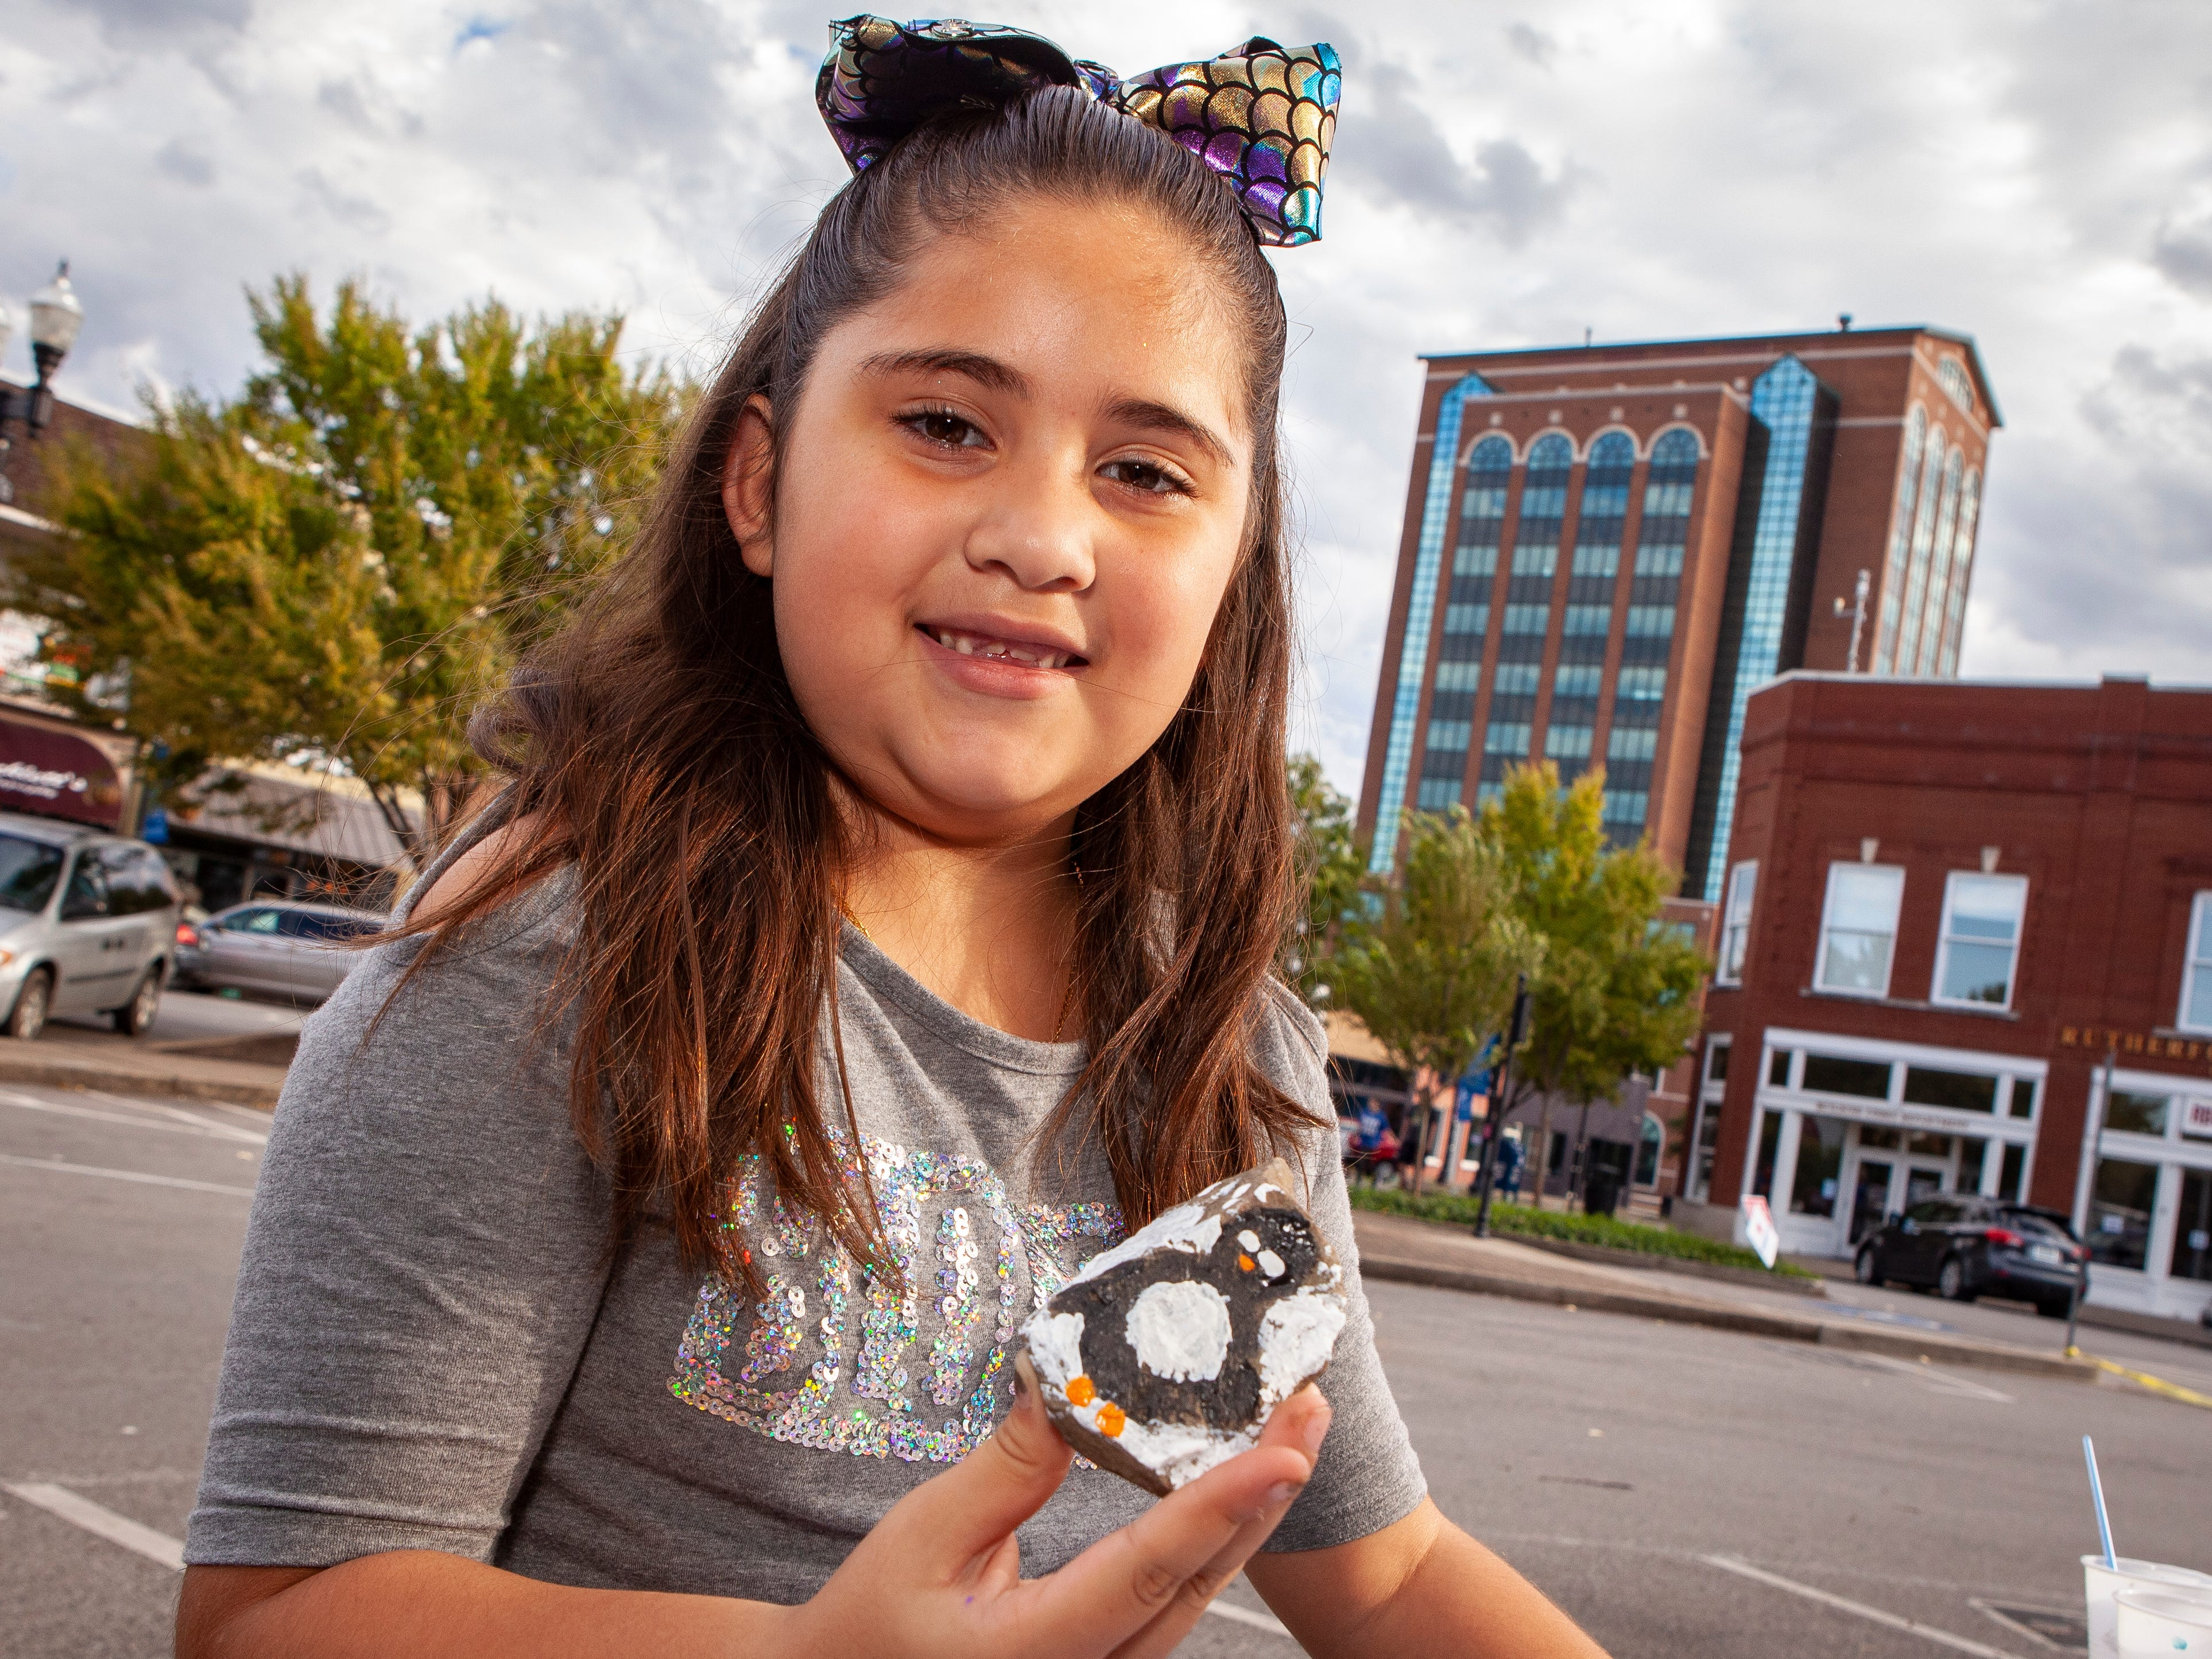 Fernanda Barron shows off a painted rock as Murfreesboro Loves celebrated the anniversary of its founding on Sunday, Oct. 28, 2018.